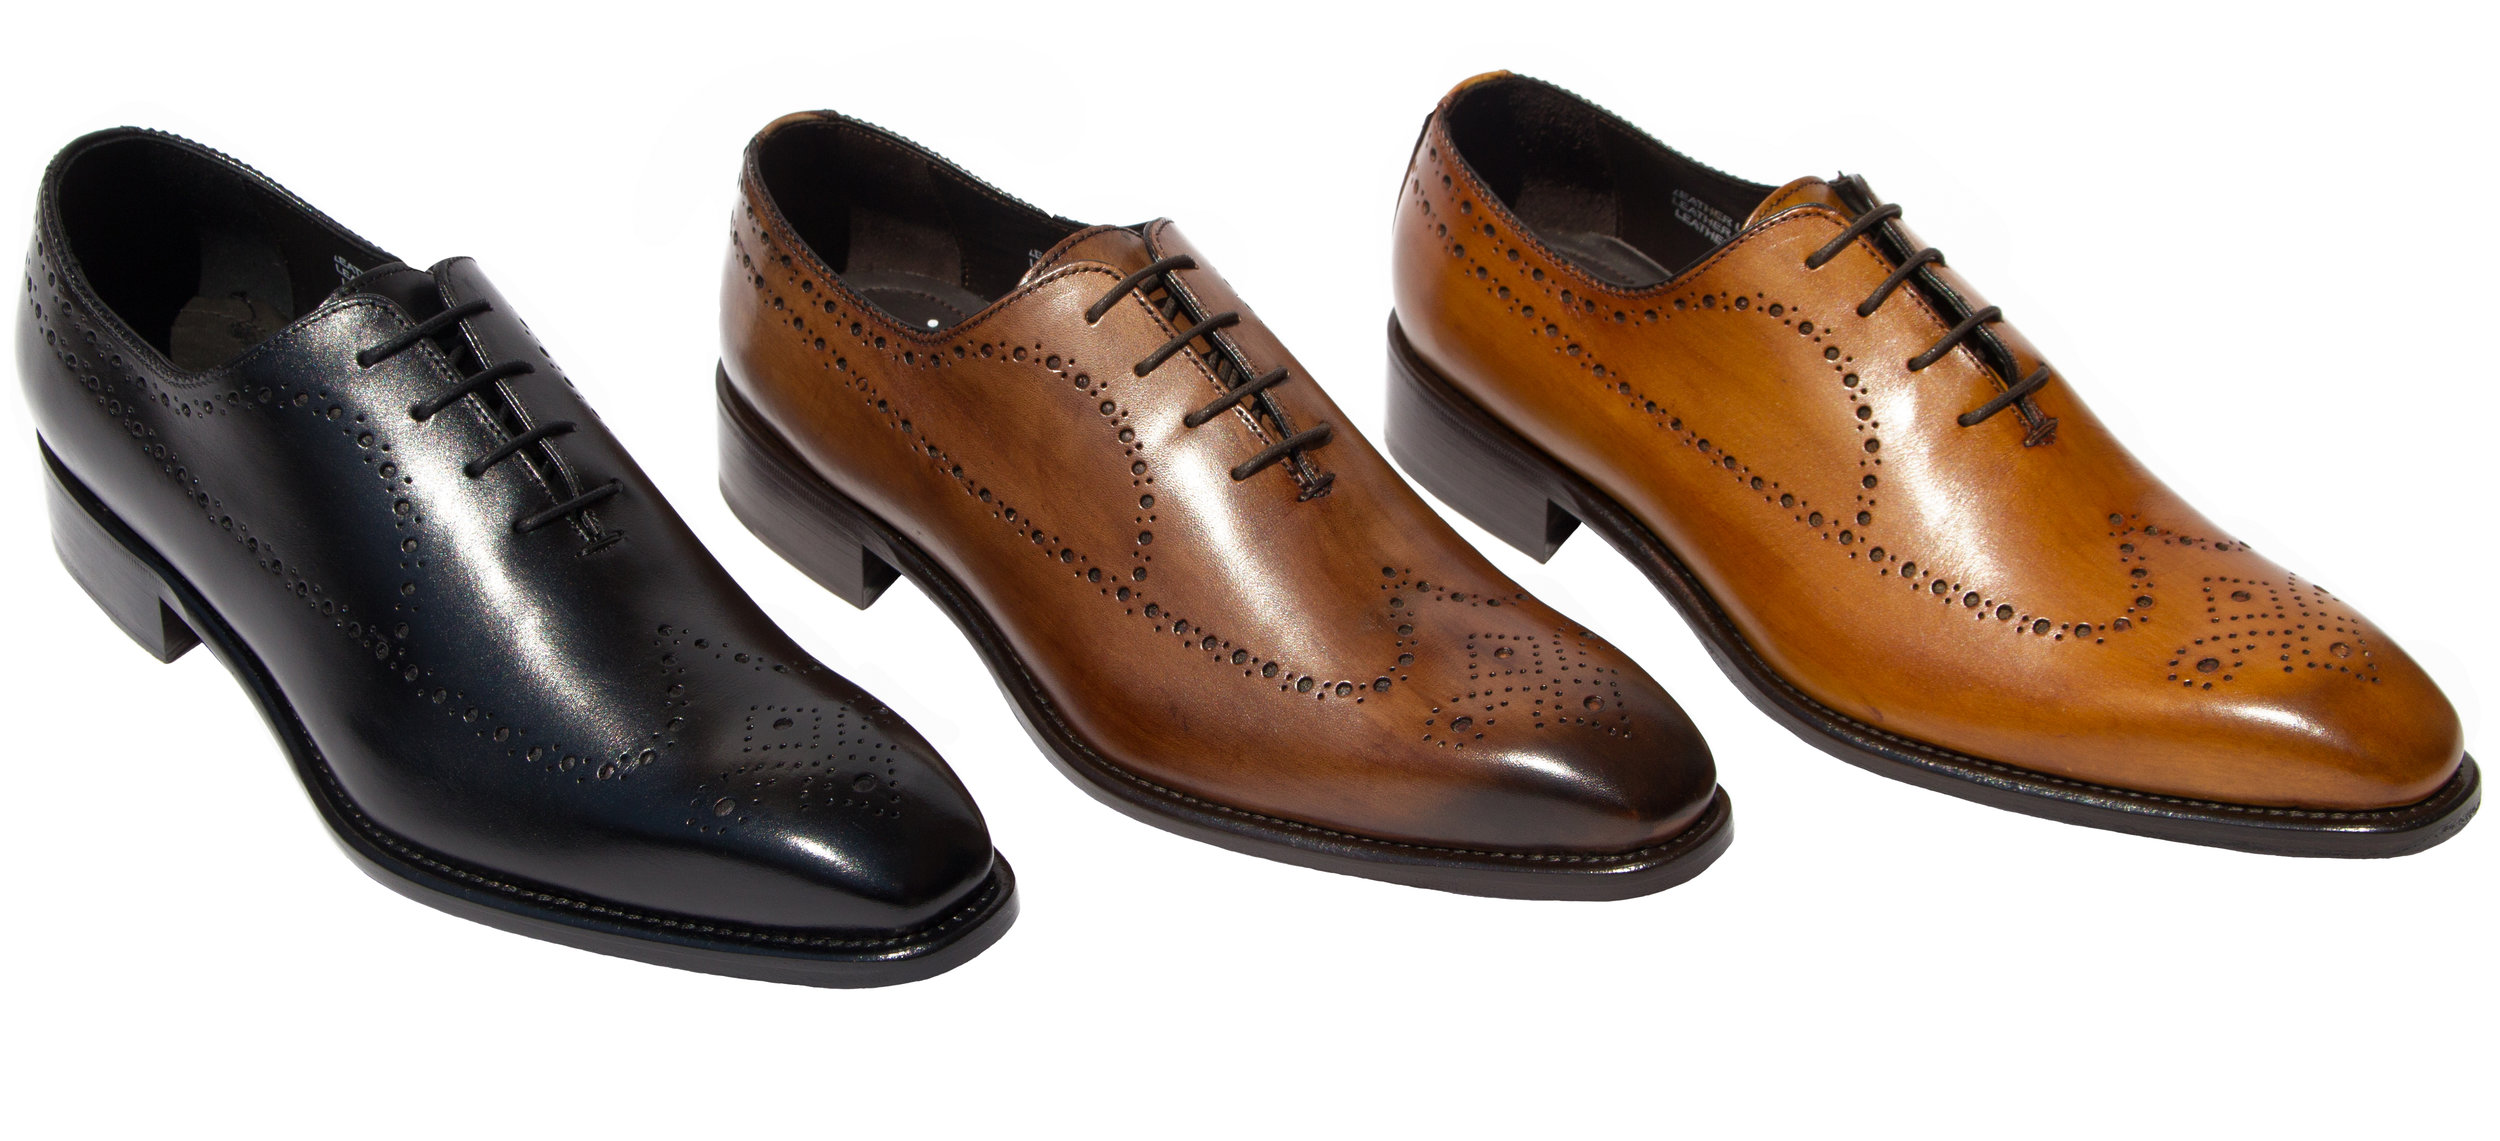 Style # 8712: Black, Brown, Chestnut  Hand-painted Cayenne Calf Perforated Wingtip (Wholecut)  Sizes available: 7 to 14 US, including half sizes